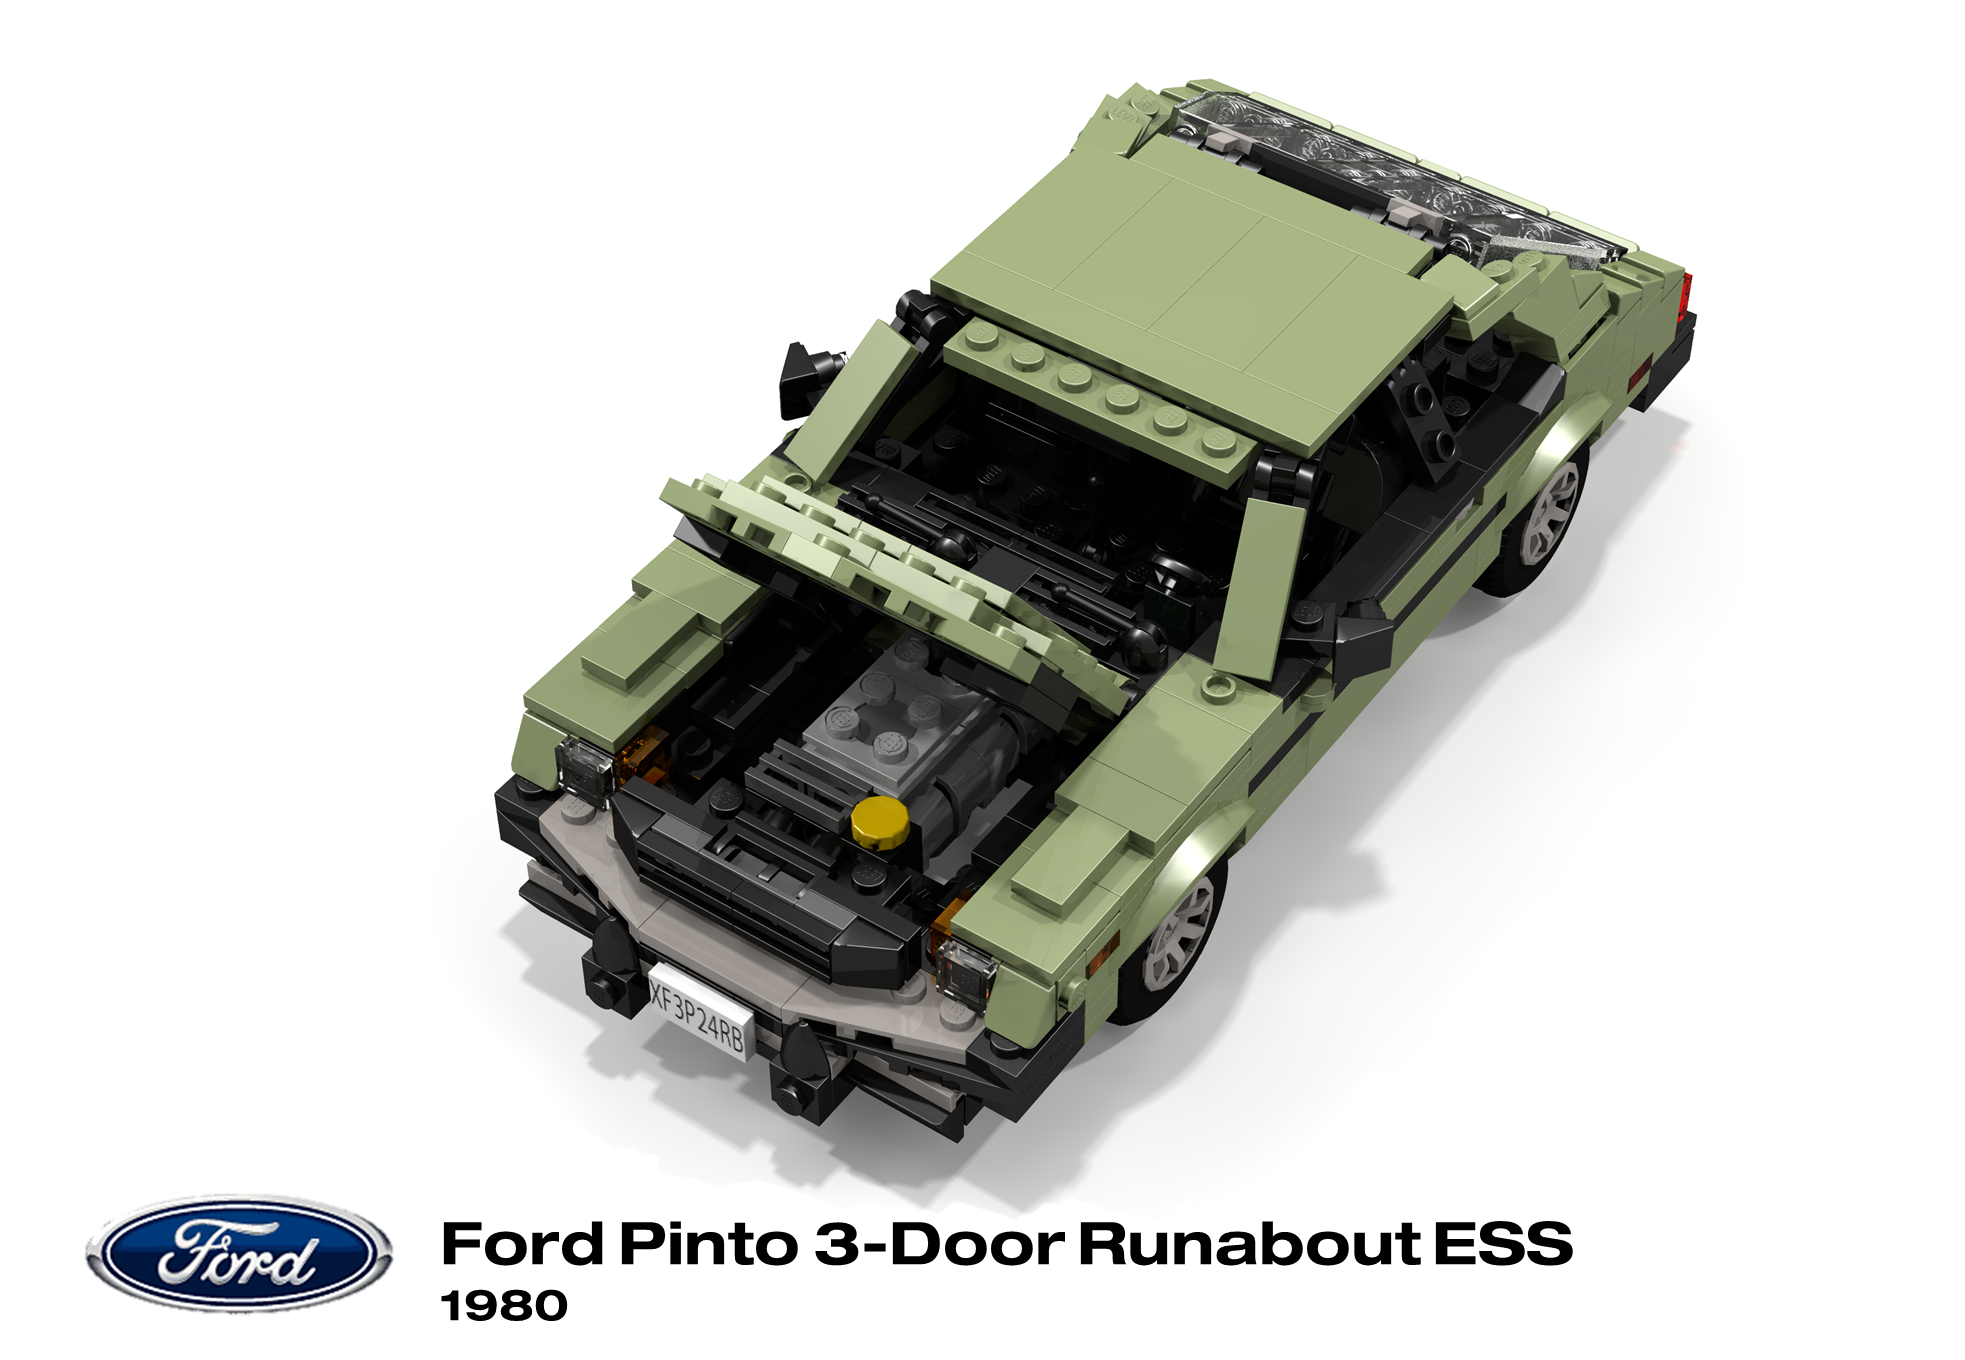 ford_pinto_runabout_ess_1980_10.png